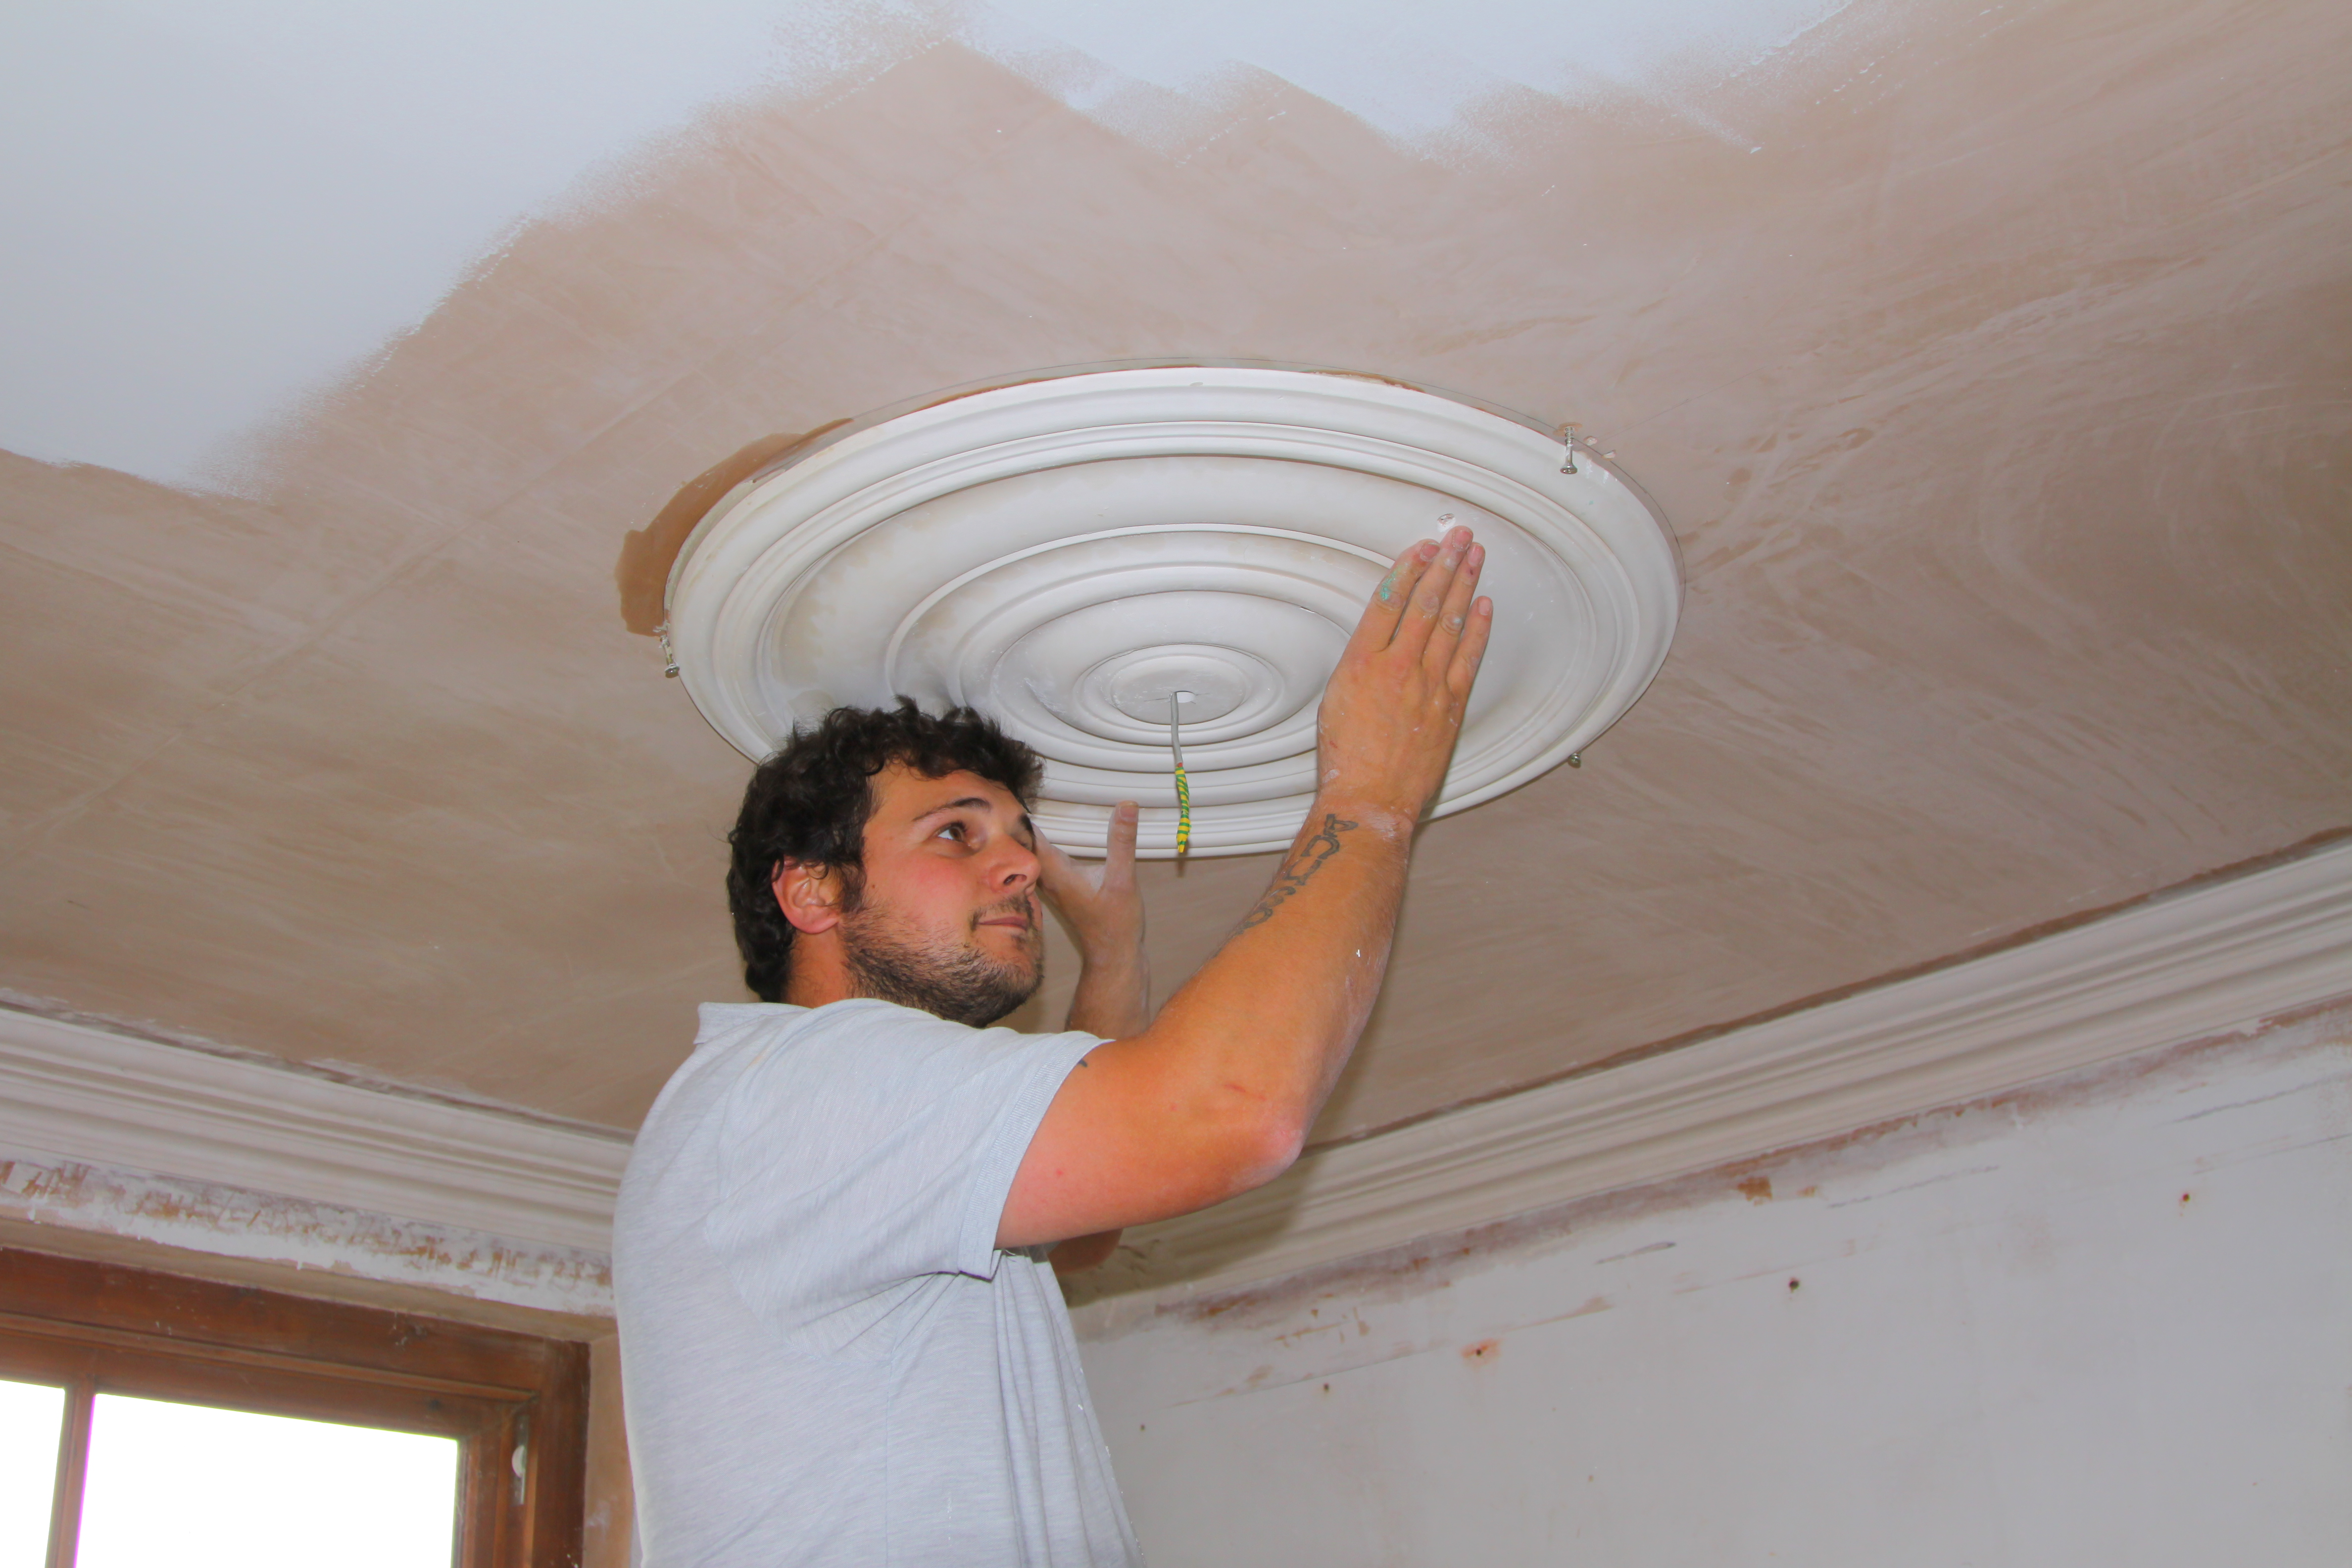 Fitting ceiling roses